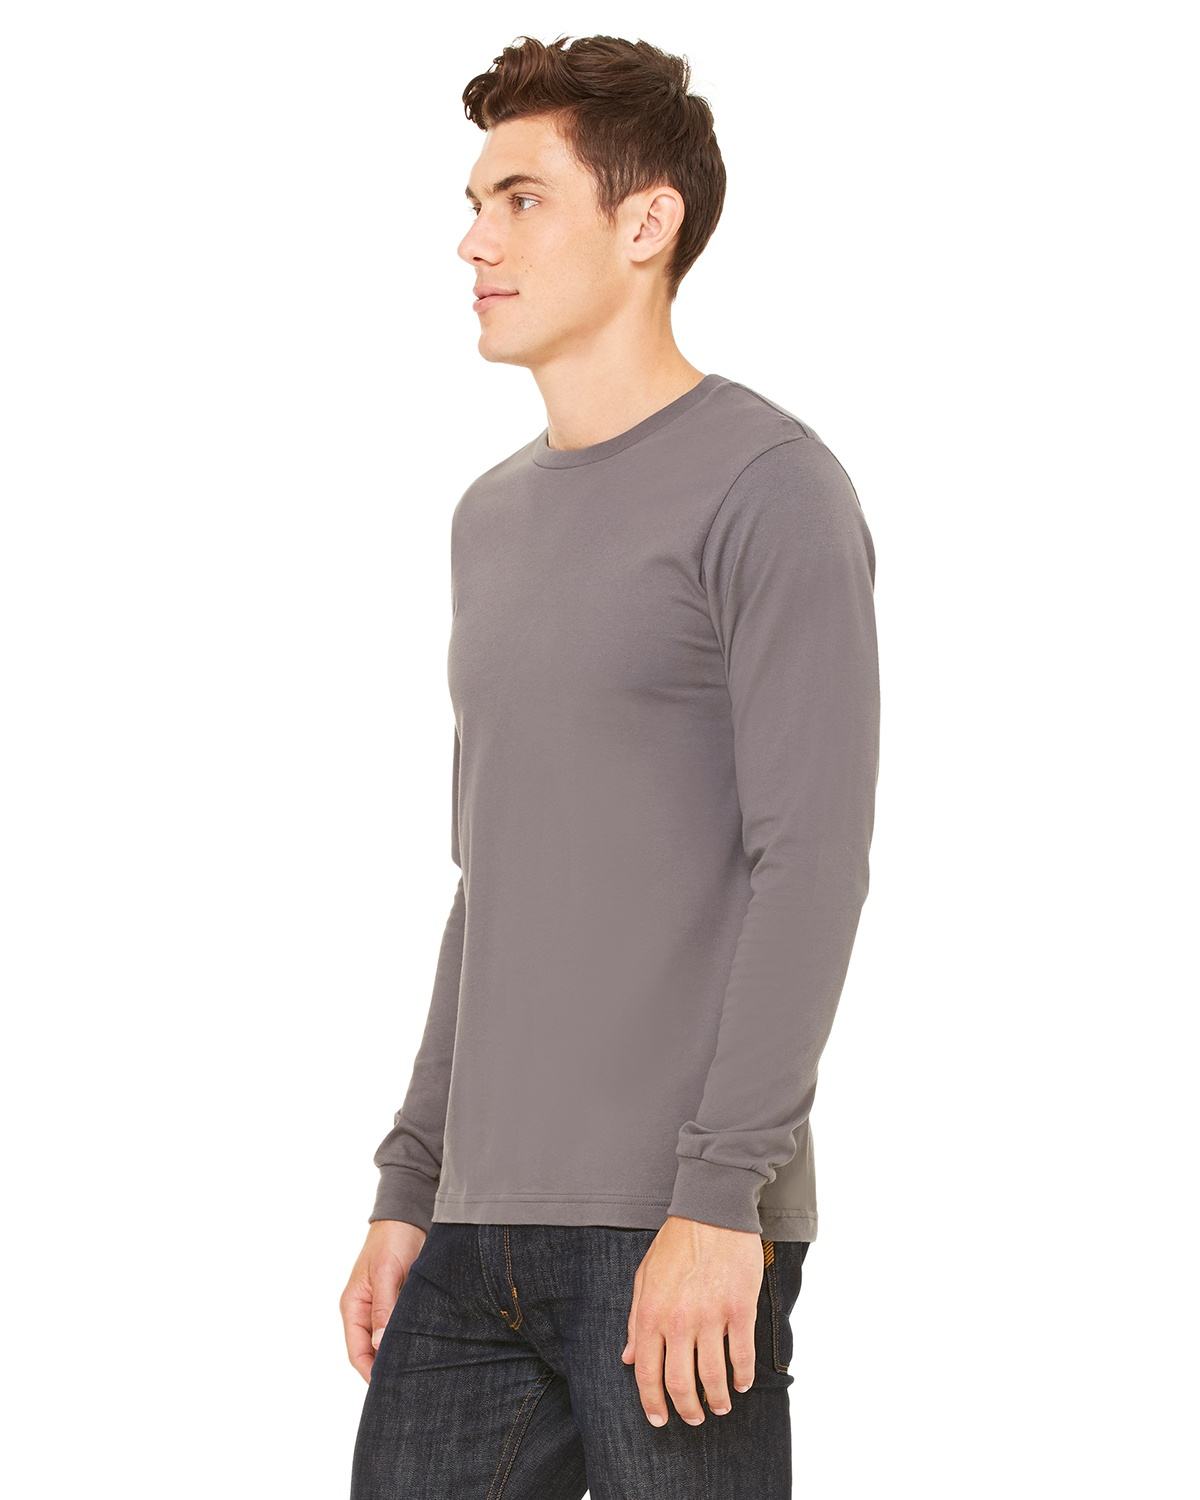 d606c53fd1230 Bella Canvas Long-Sleeve T-Shirt | Buy 3501 Unisex Jersey Tee ...